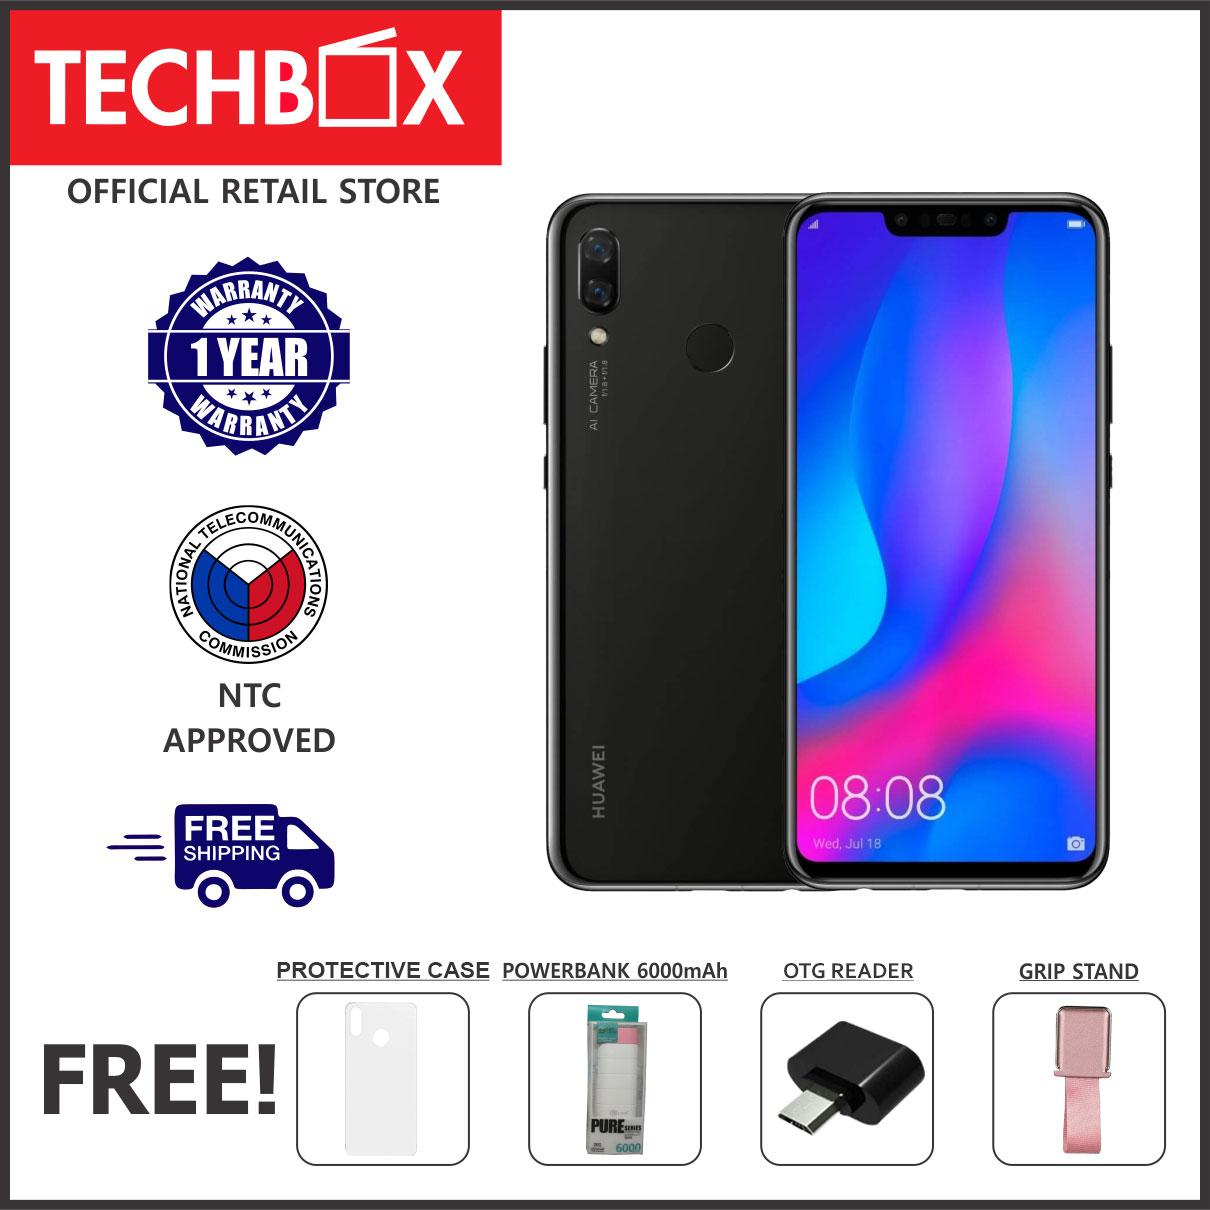 Huawei Philippines - Huawei Phone for sale - prices